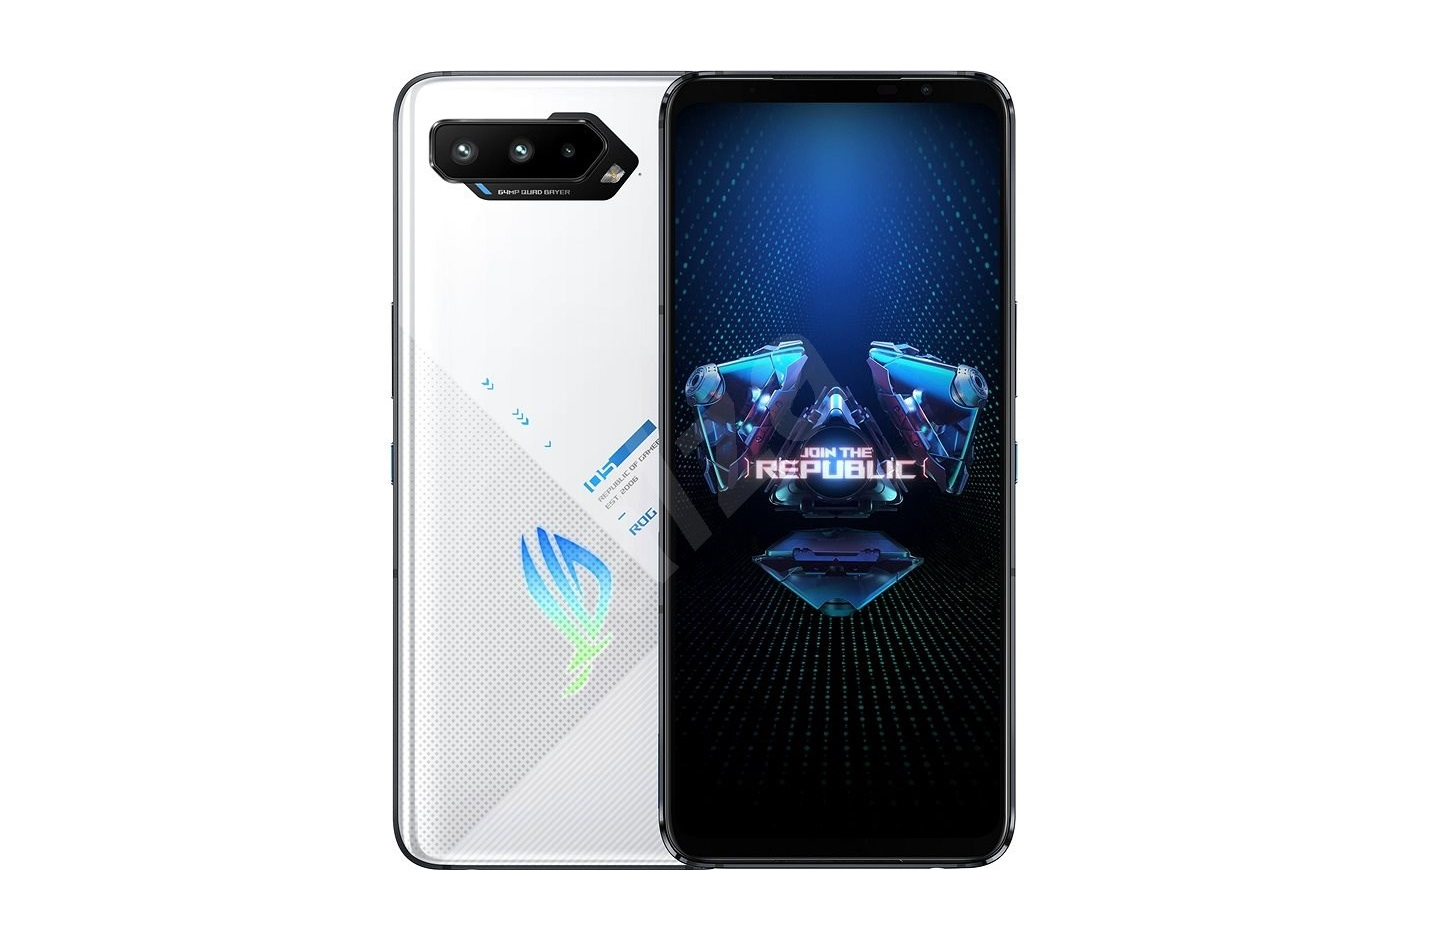 How to Root Asus ROG Phone 5 with Magisk without TWRP